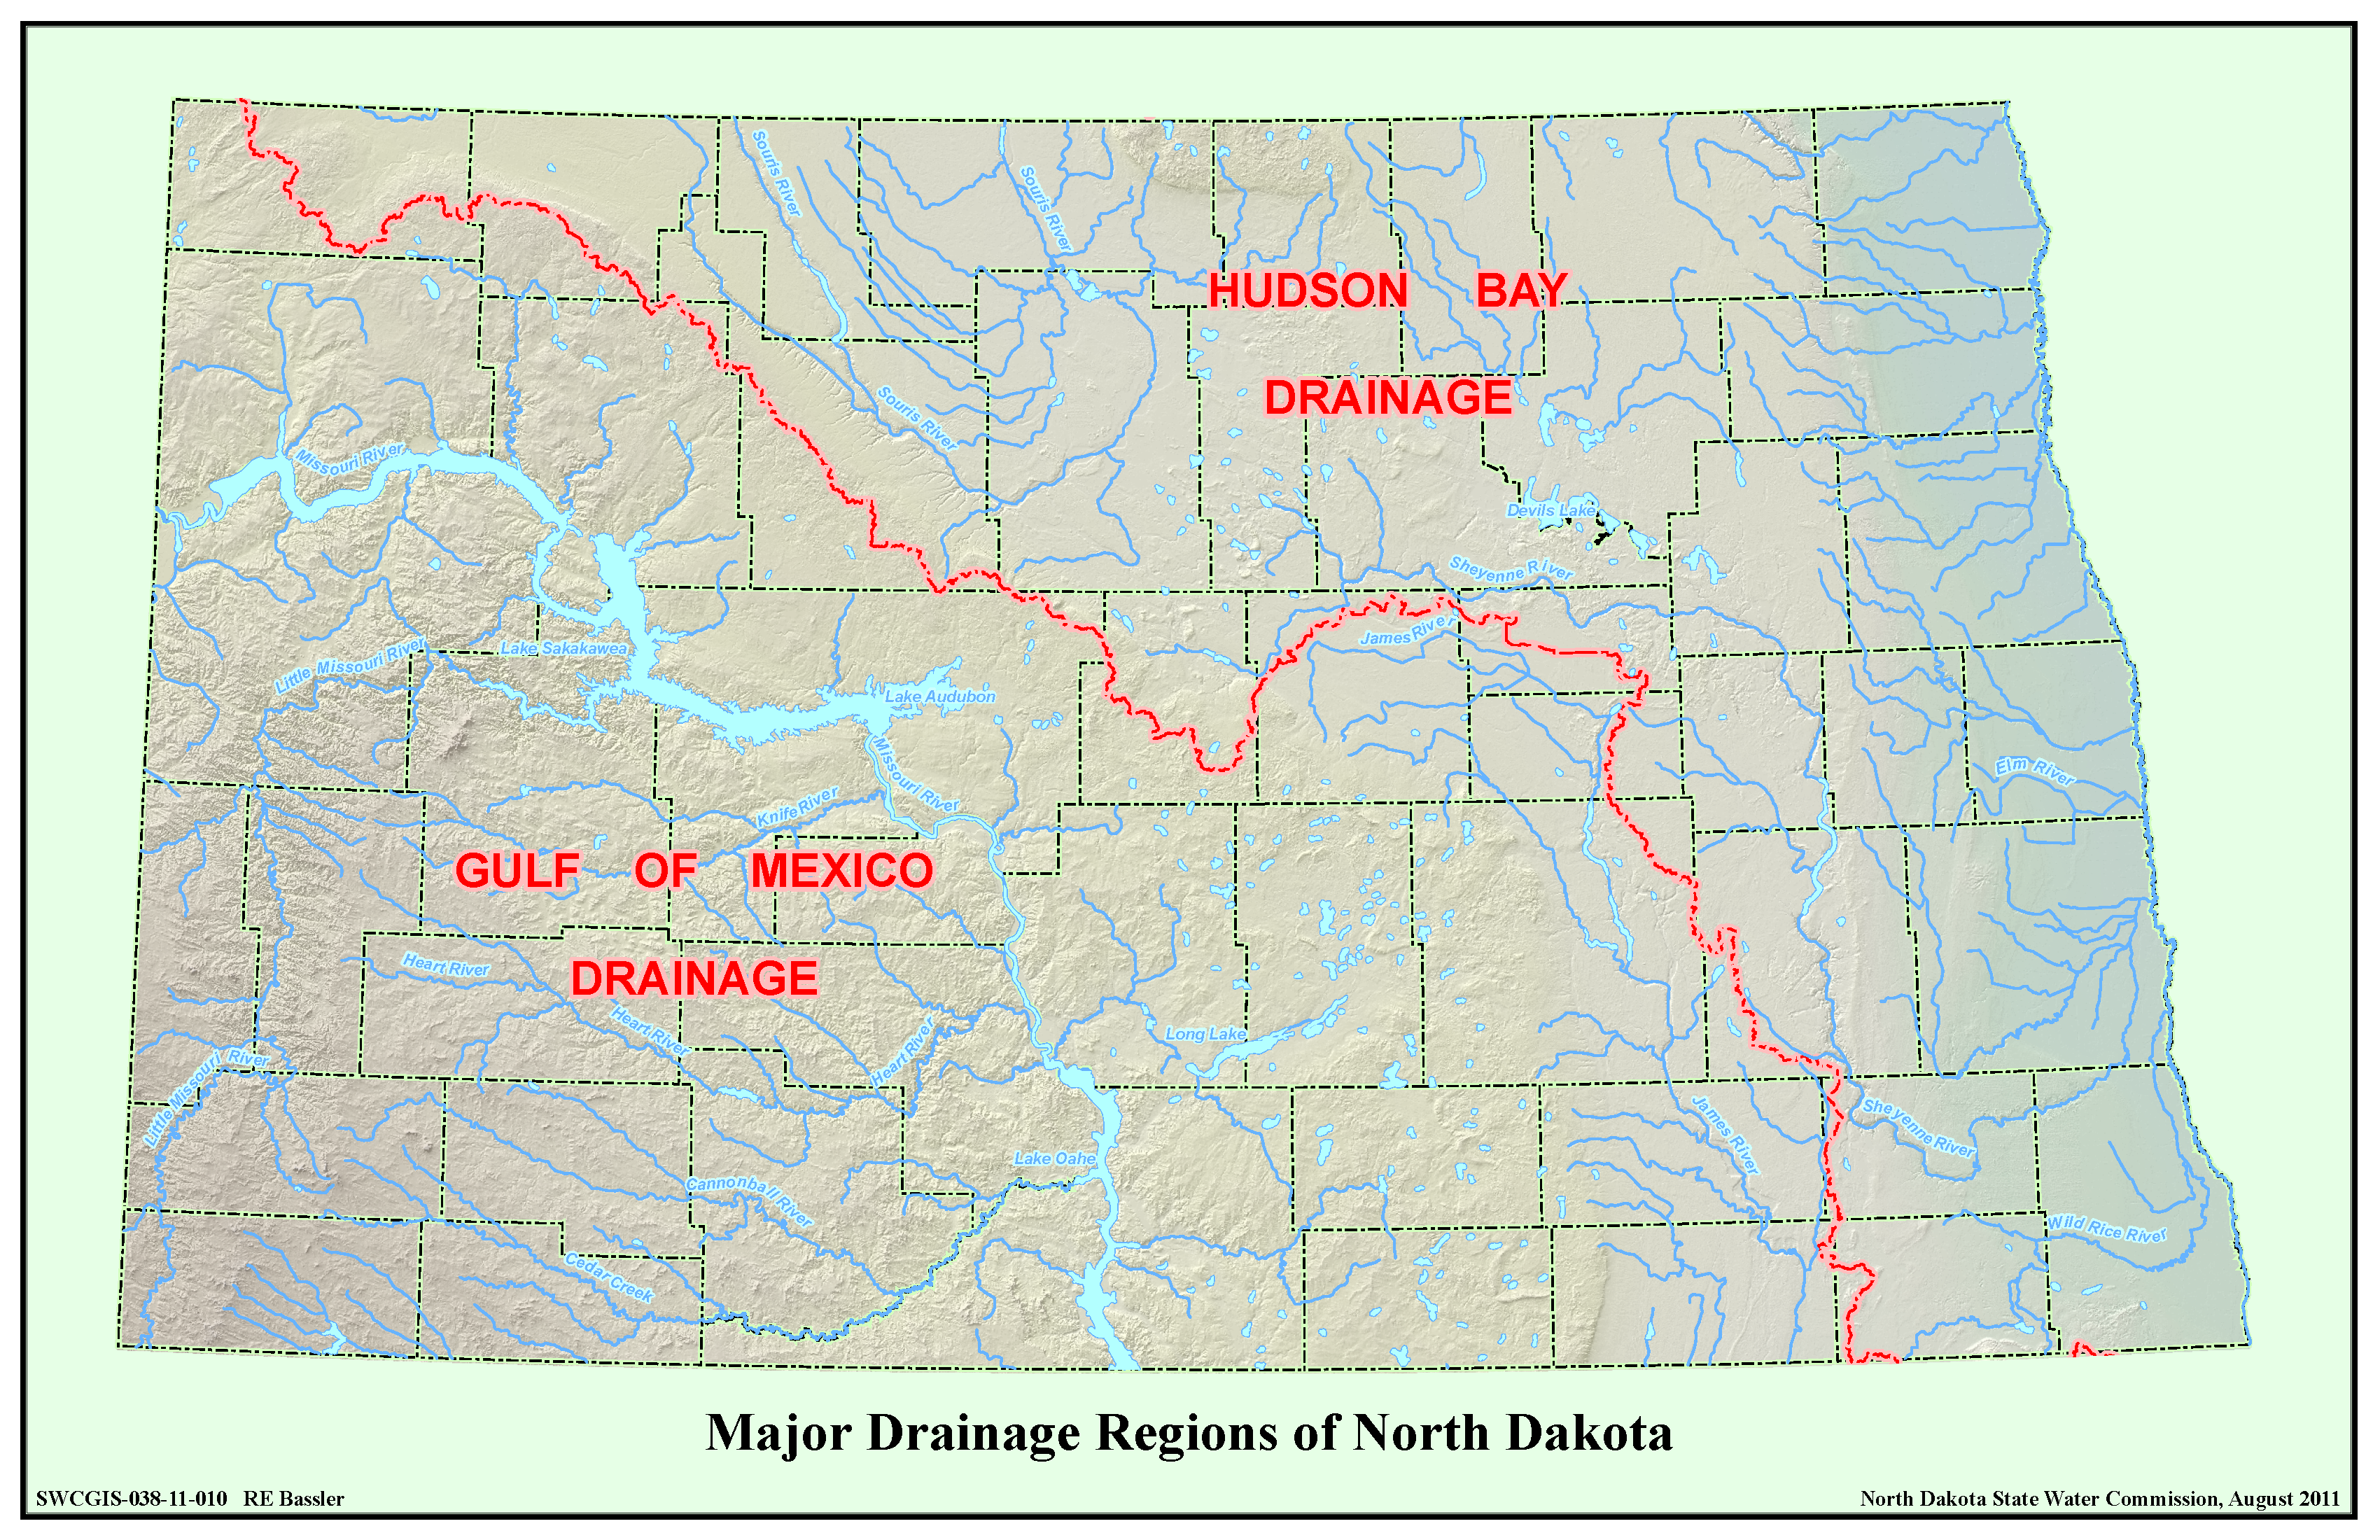 Major Drainage Regions of North Dakota